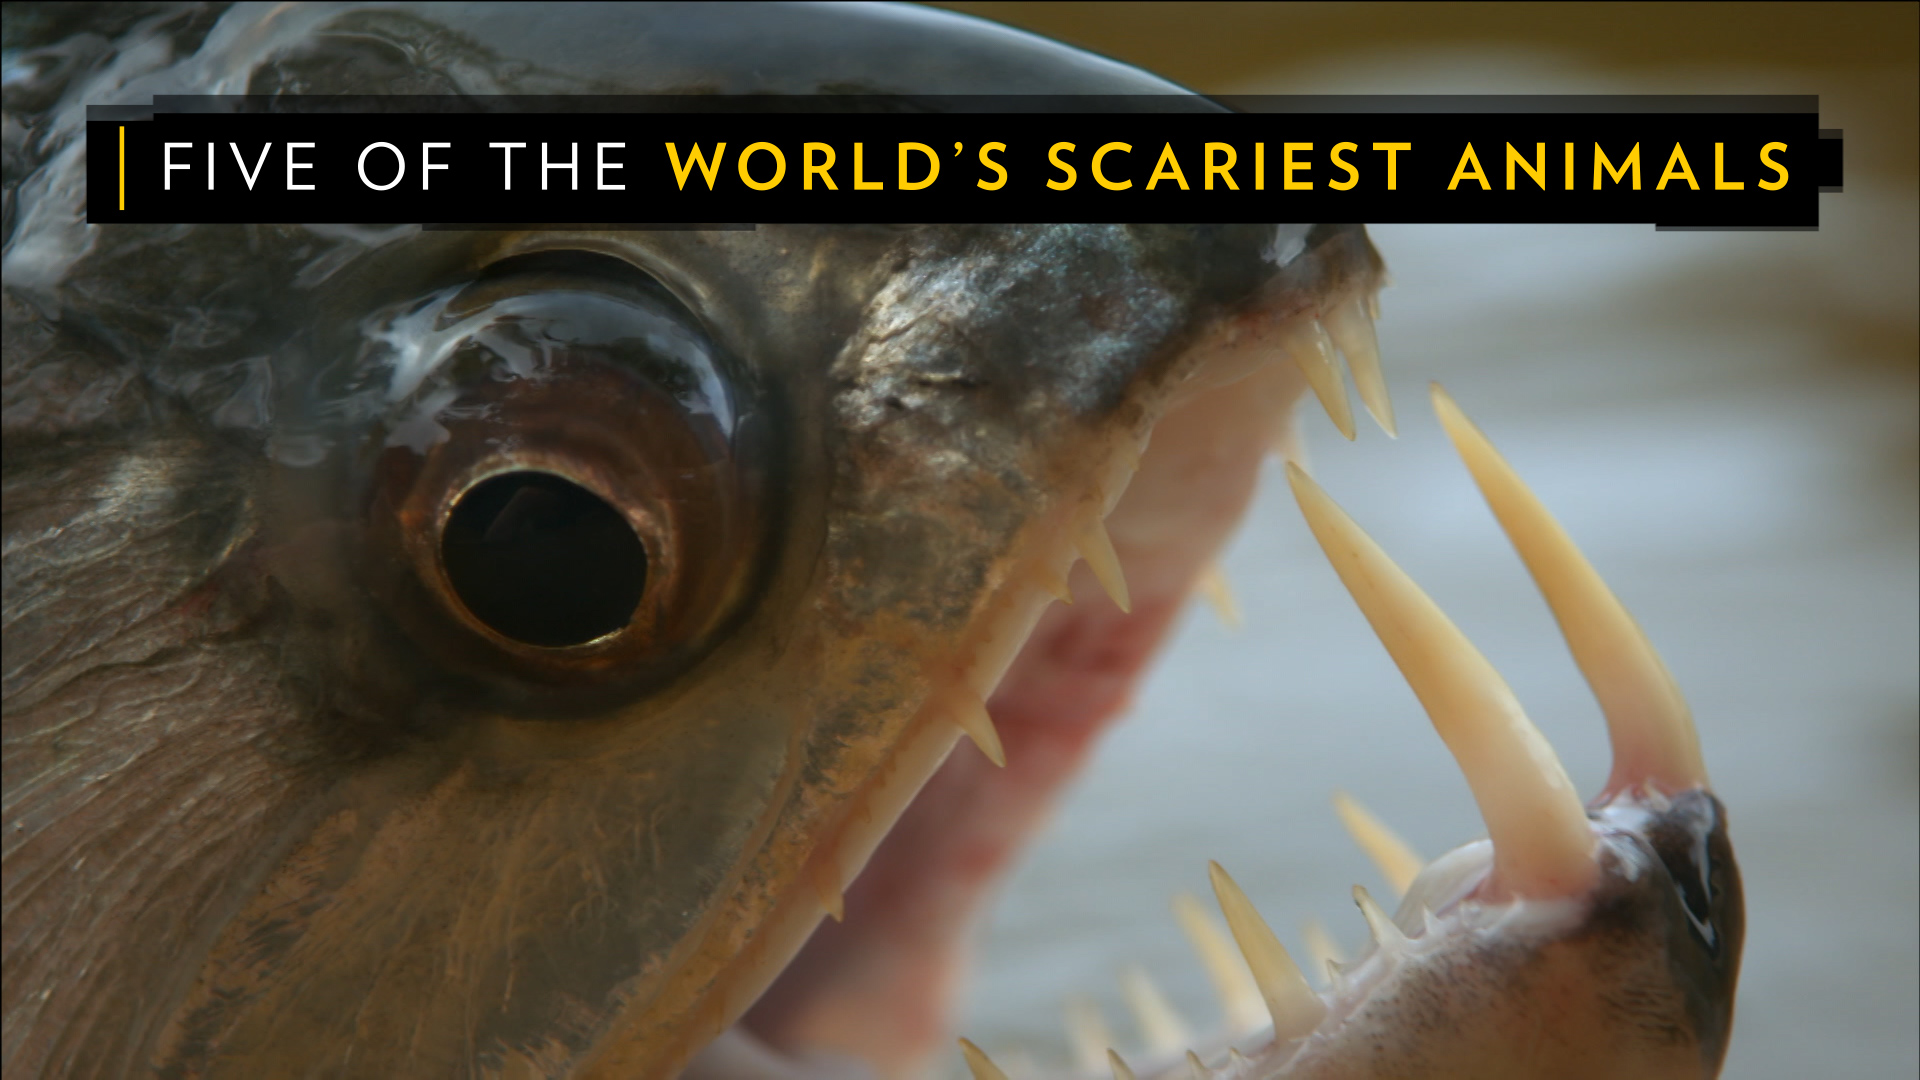 Explore The Beauty Of Caribbean: The World's Biggest Spider, Vampire Fish, And Other Real